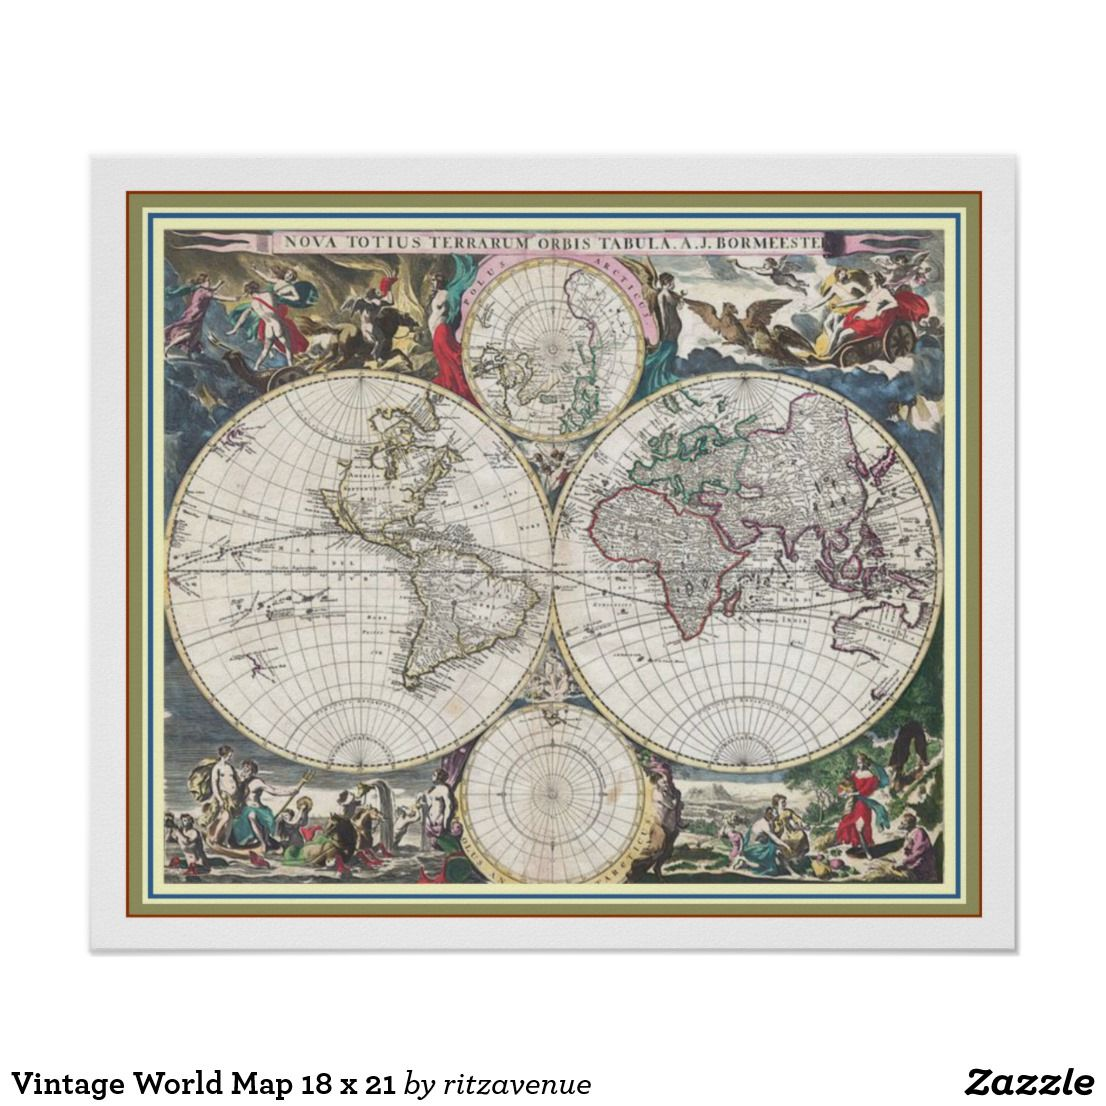 Vintage world map 18 x 21 poster 16 art deconouveau old vintage world map 18 x 21 poster 16 gumiabroncs